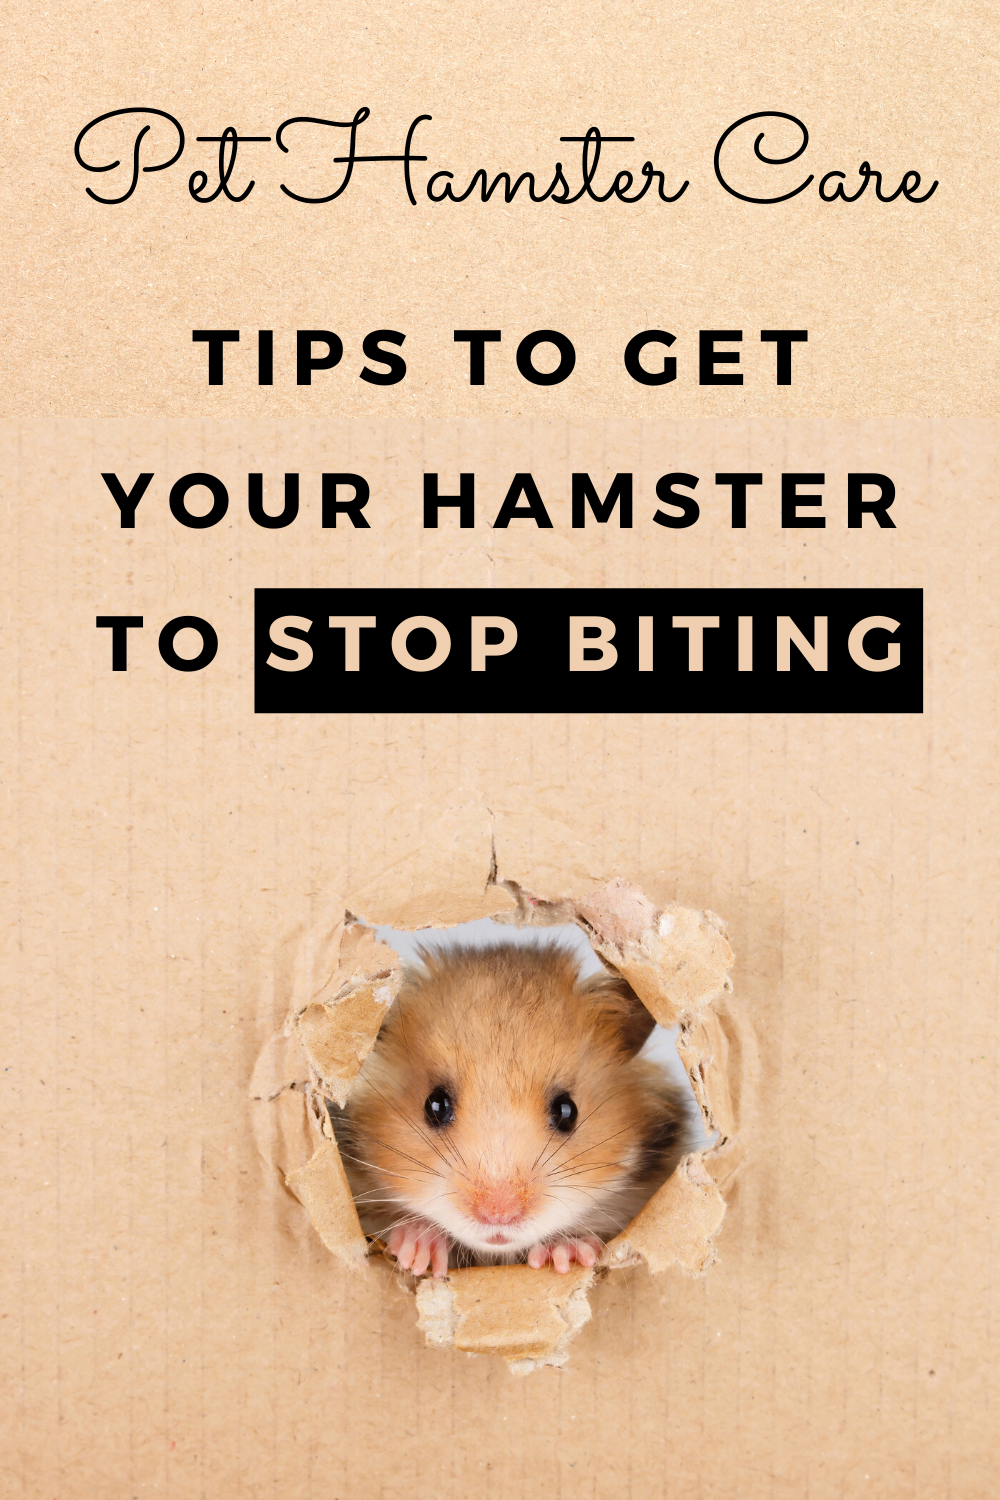 12fc68dd762dd1791f7c45e1cd892108 - How To Get My Hamster To Stop Biting His Cage